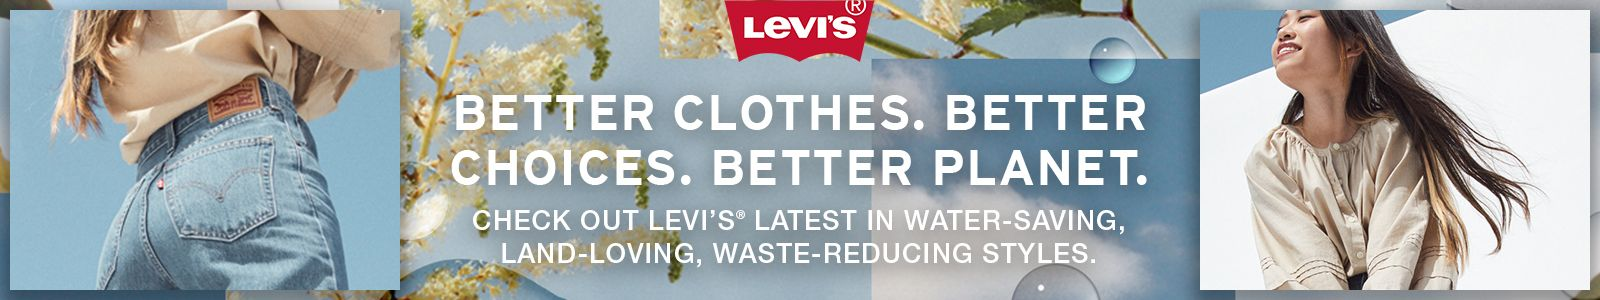 Better Clothes, Better Choices, Better Planet, Check Out Levi's Latest in Water-Saving, Land-Loving, Waste-Reducing Styles